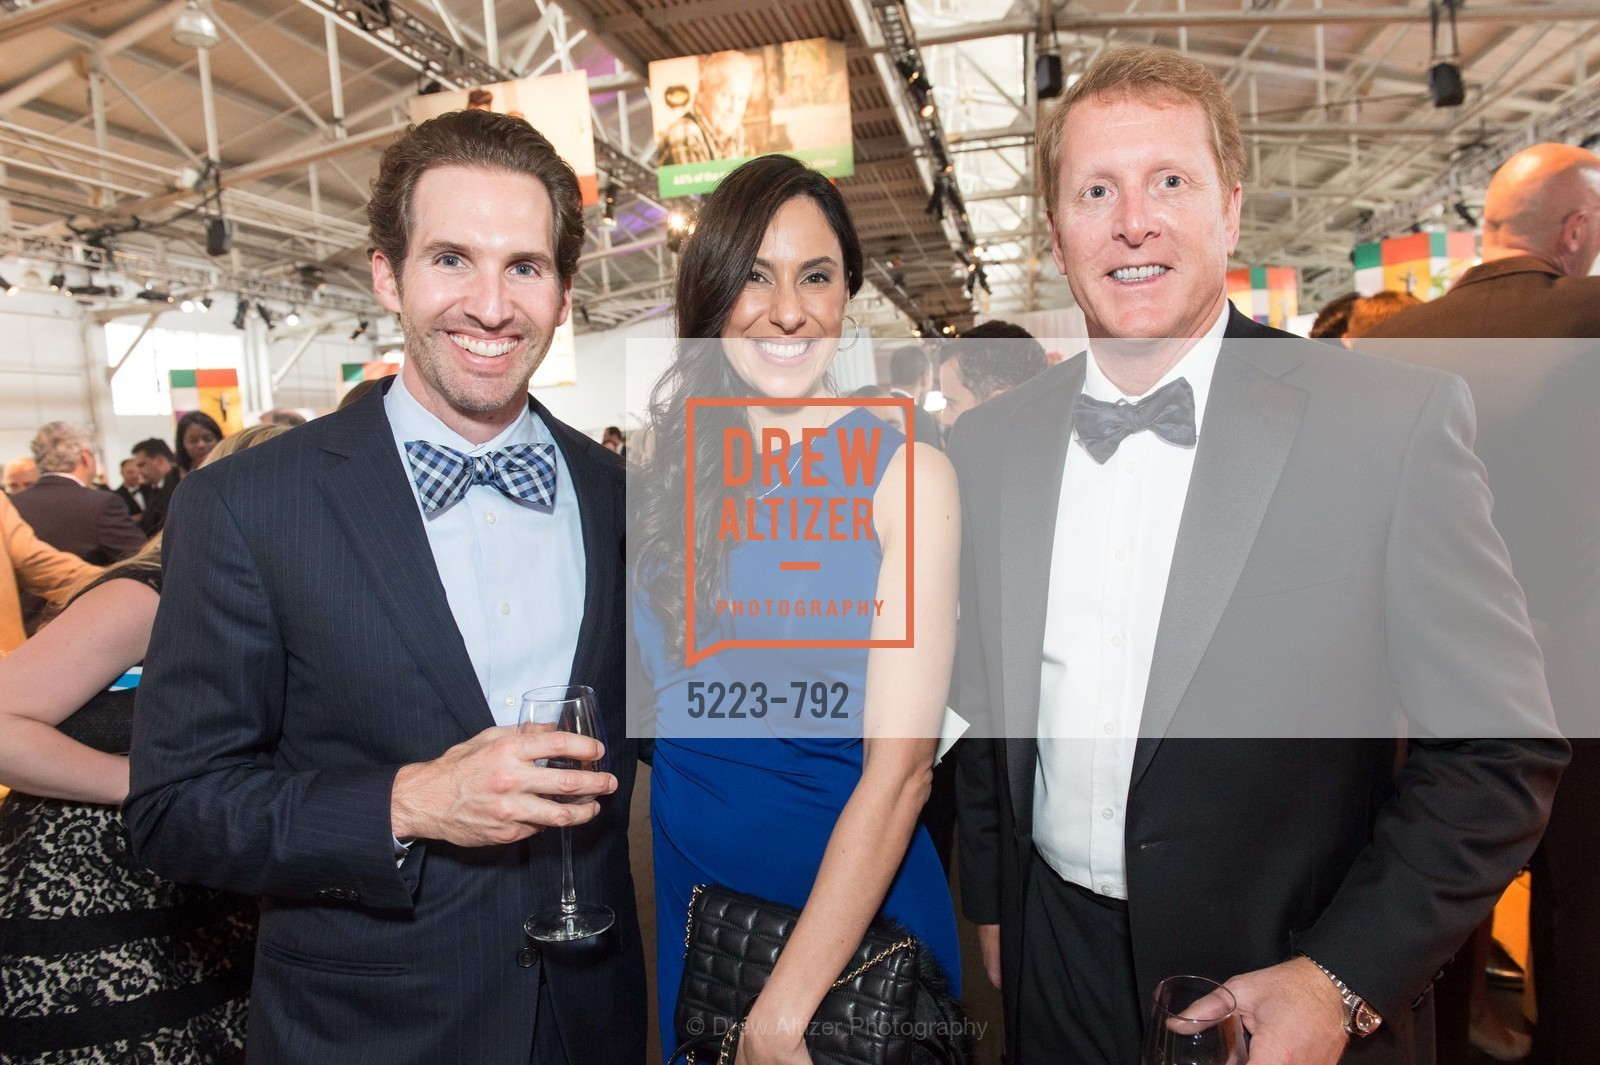 Rob Salvagno, Liz Salvagno, Harry Eggers, MEALS ON WHEELS OF SAN FRANCISCO'S 28th Annual Star Chefs and Vintners Gala, US, April 20th, 2015,Drew Altizer, Drew Altizer Photography, full-service agency, private events, San Francisco photographer, photographer california